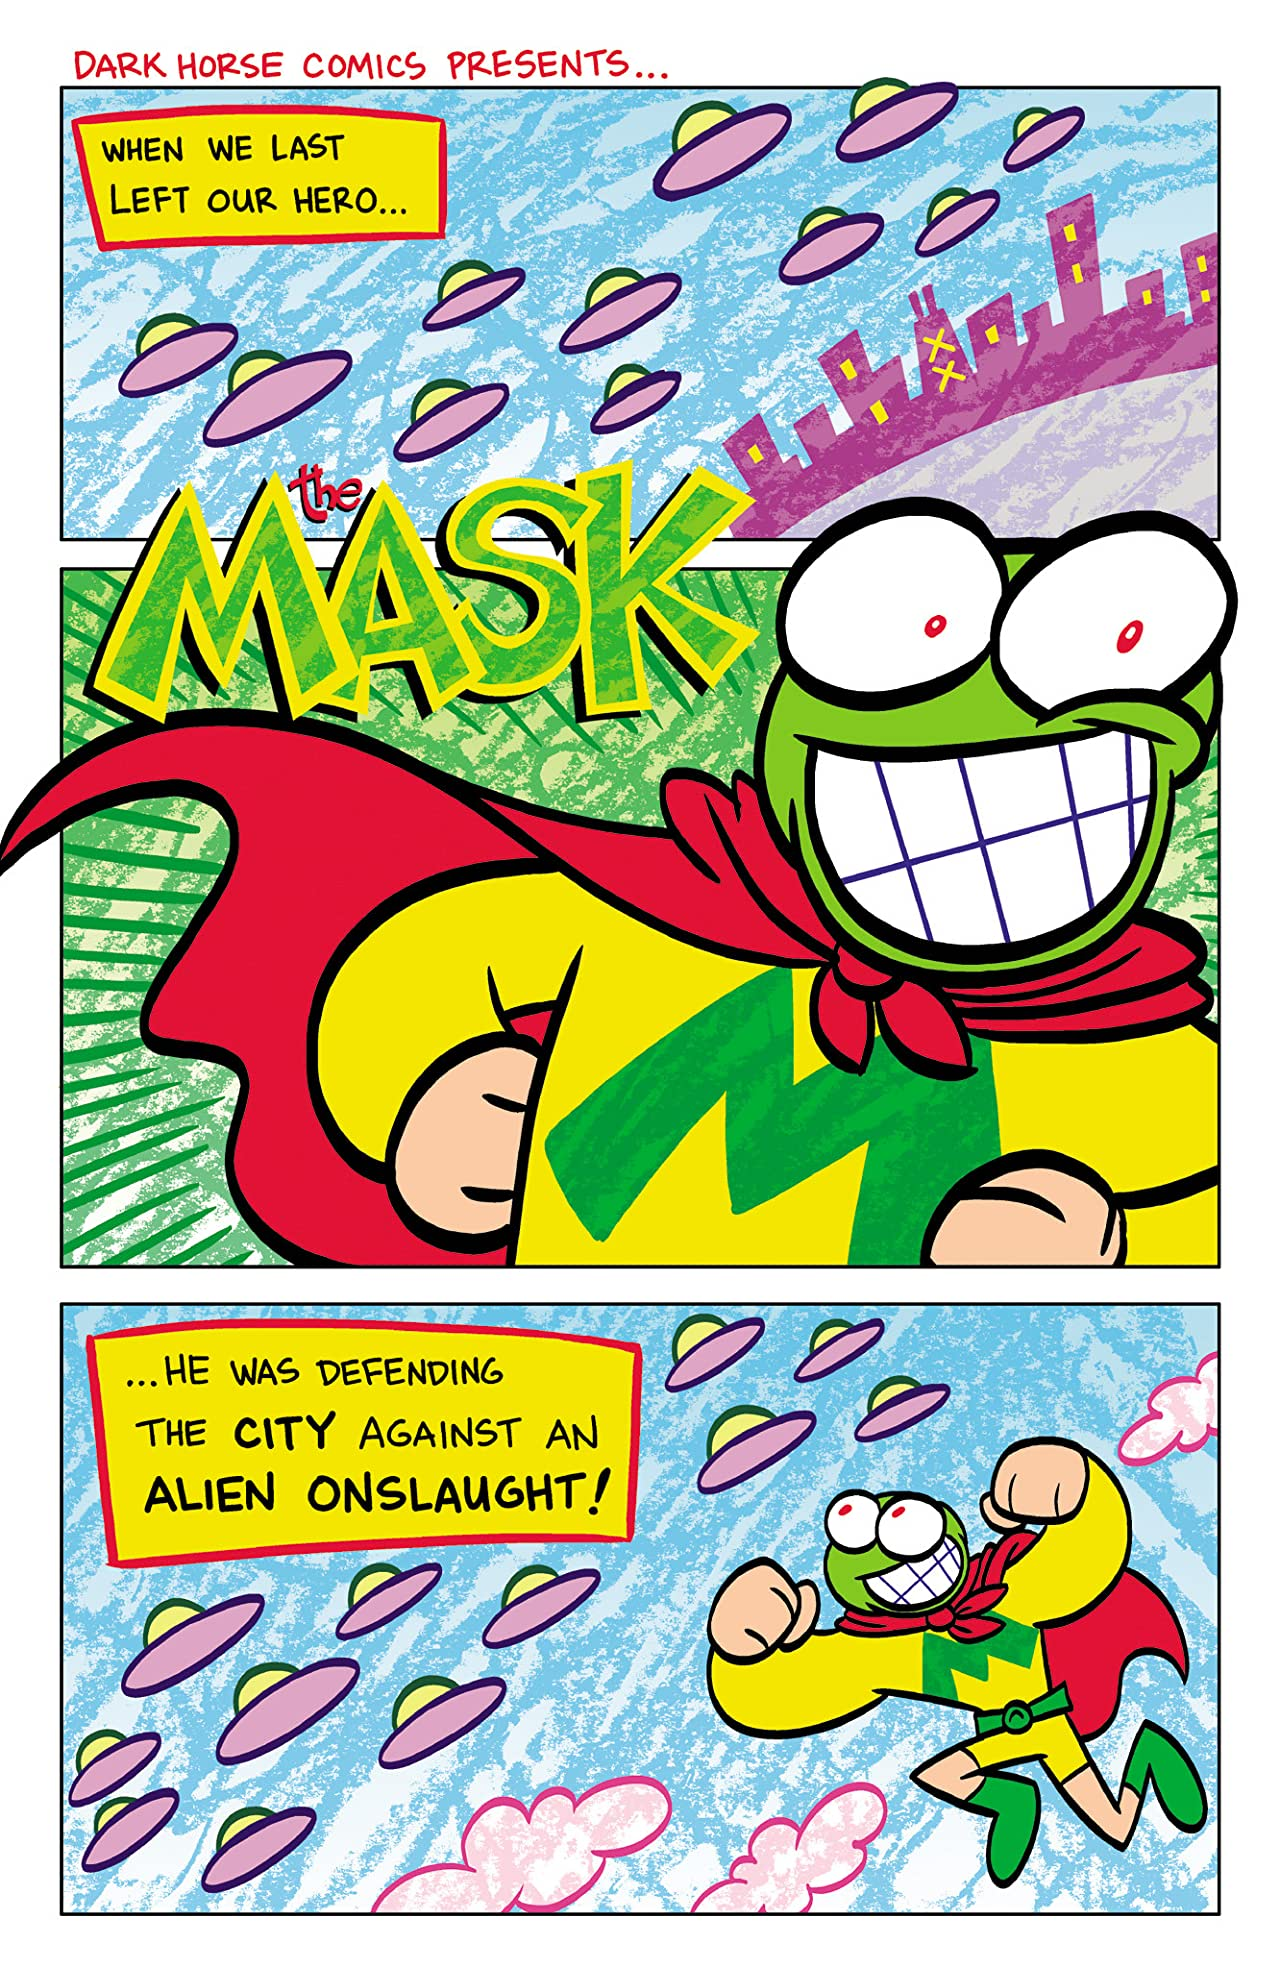 Itty Bitty Comics: The Mask #4